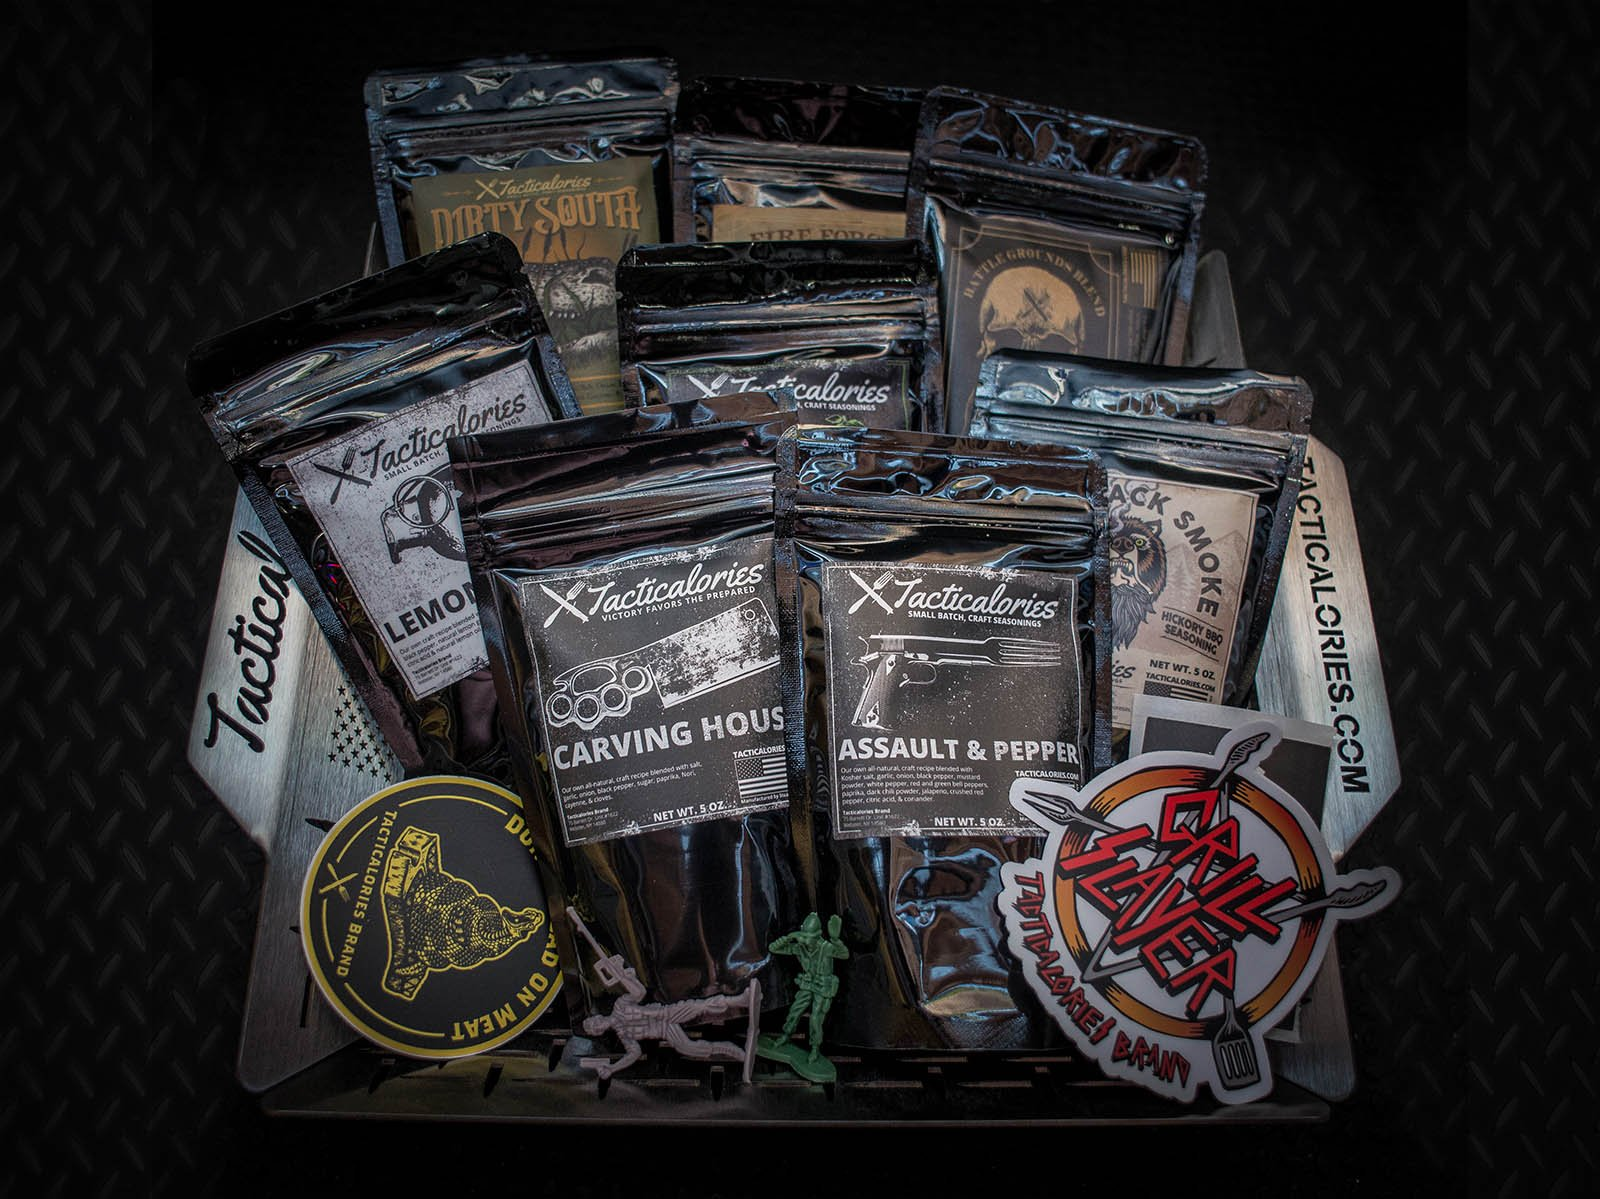 Giveaway: Tacticalories Grilling Basket & Seasonings Kit